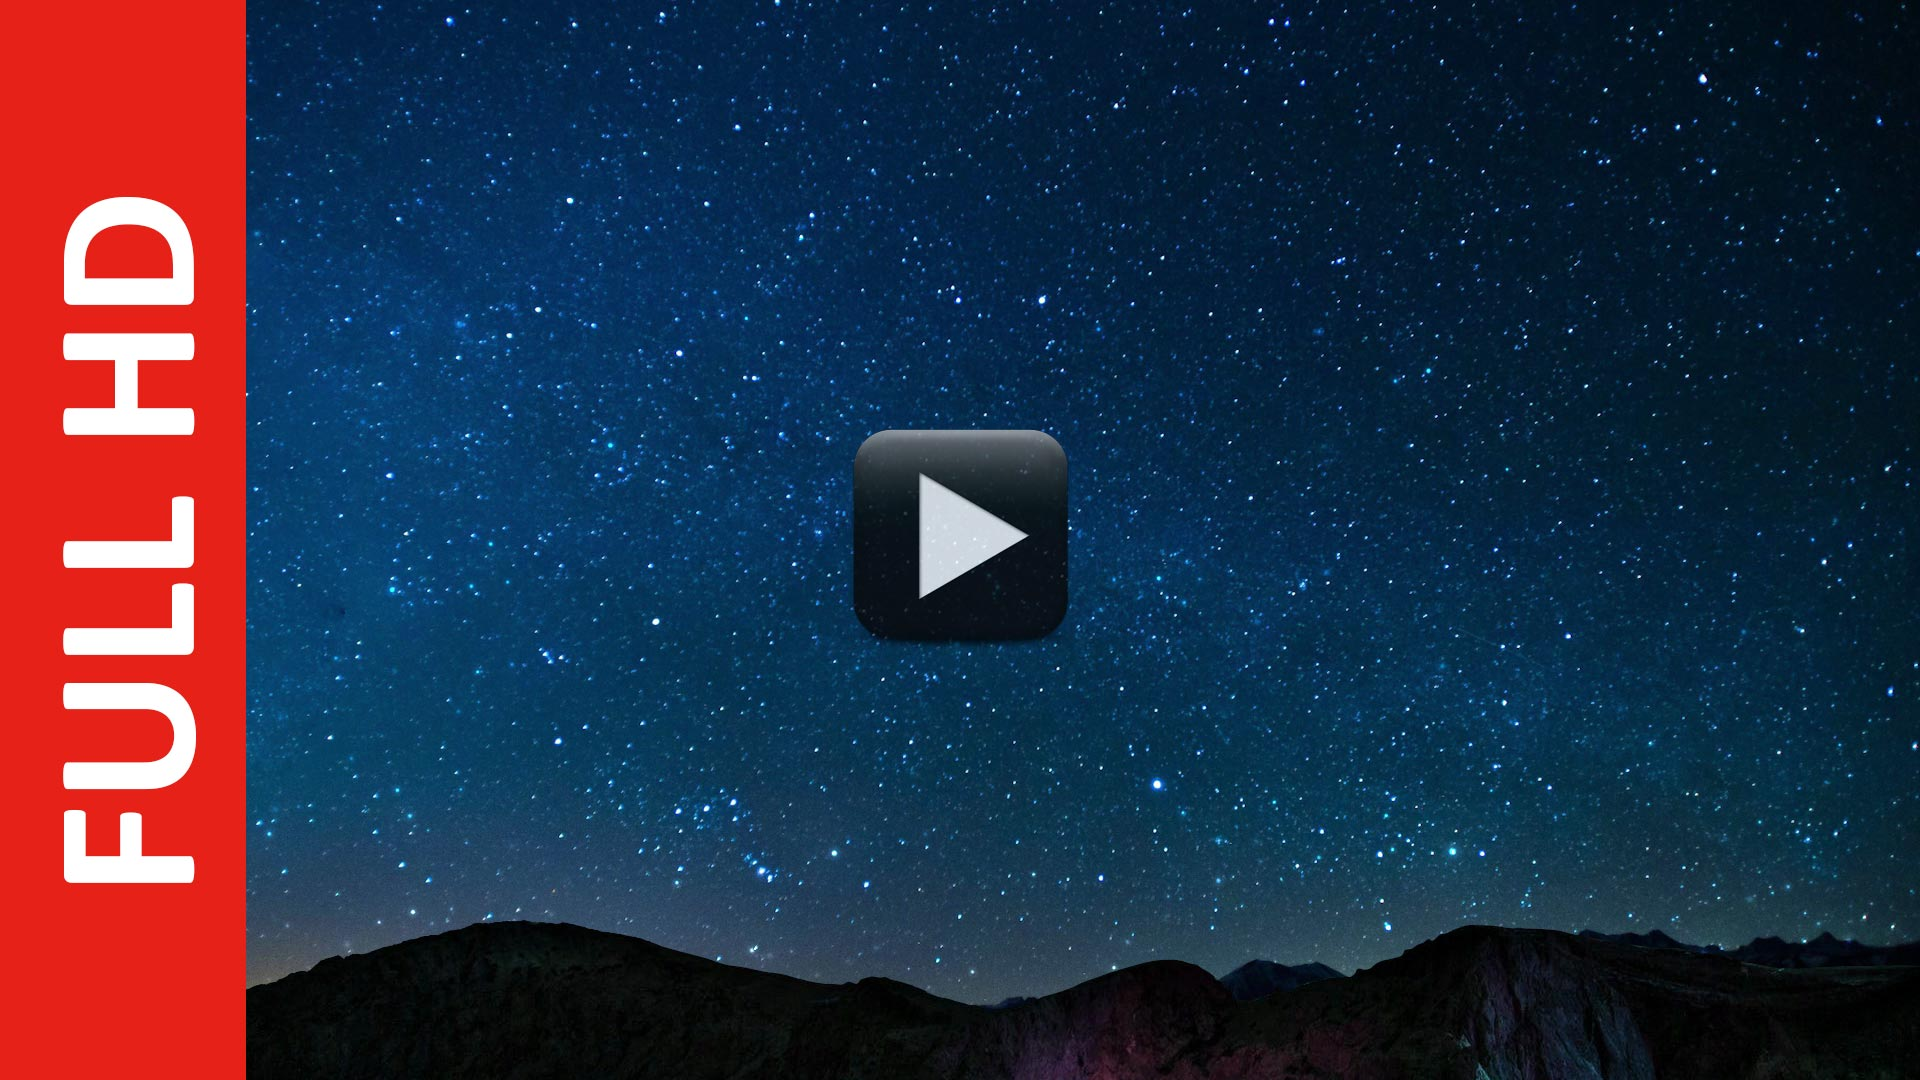 Night Sky Stars Falling Animated Video Background | All